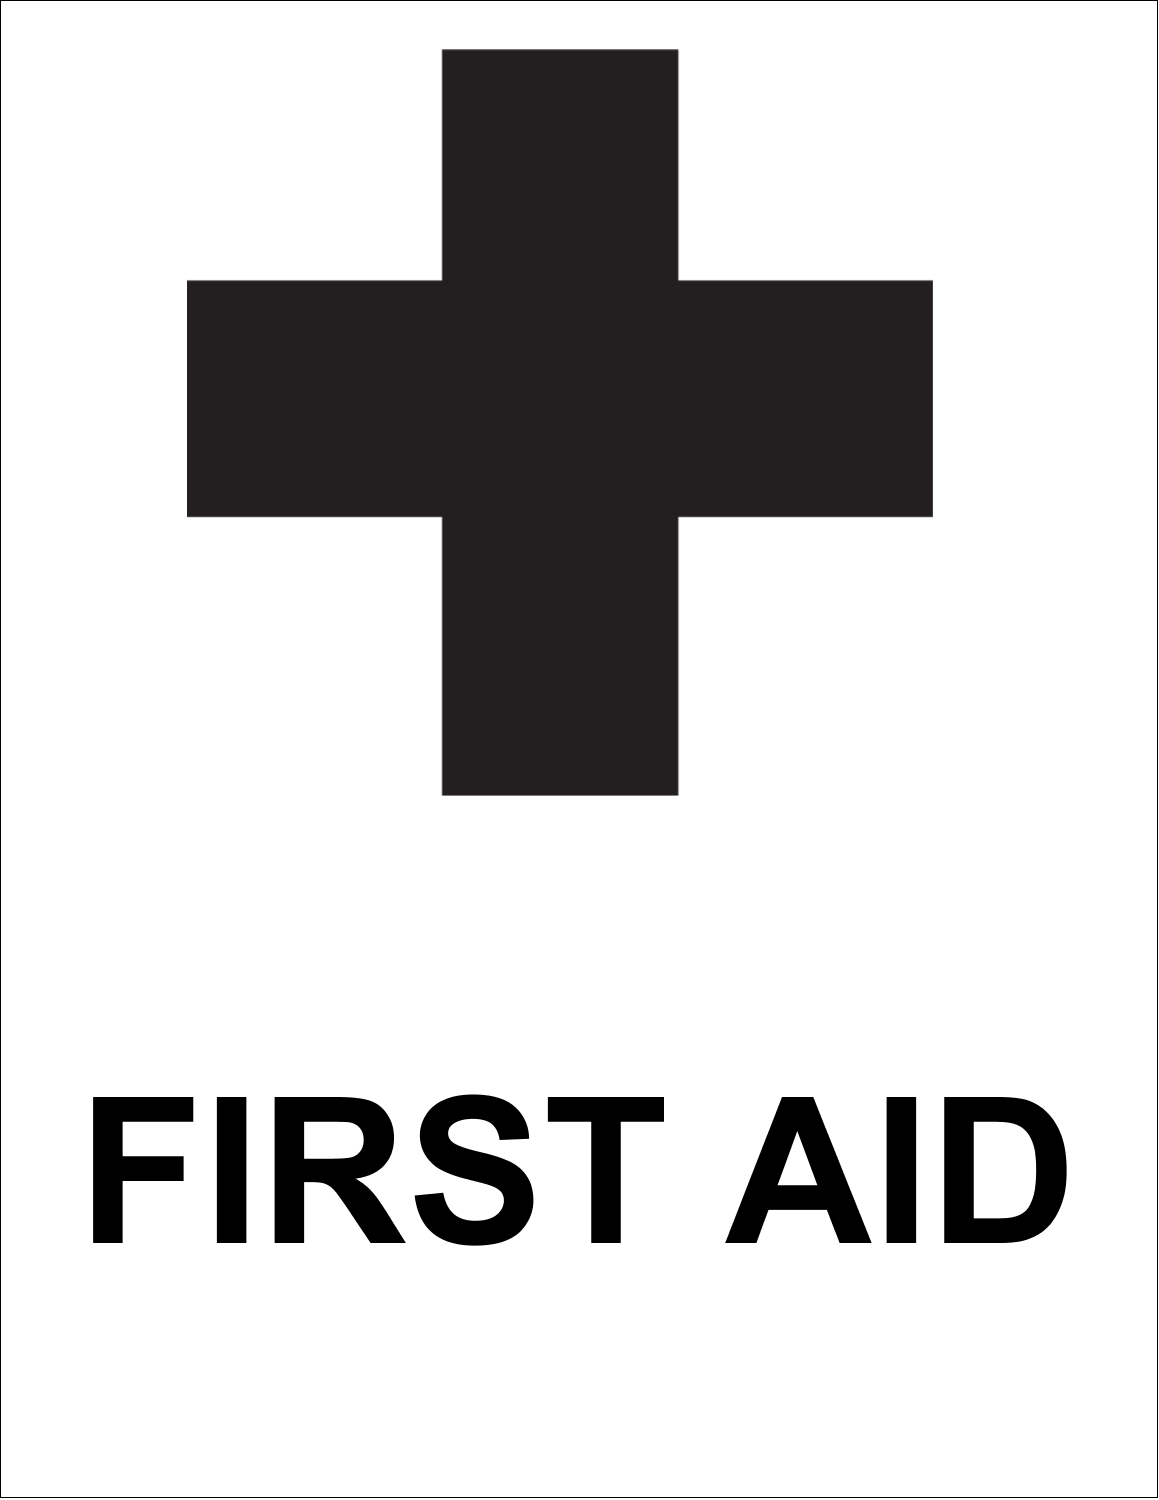 Create first aid signs for the workplace with pre-designed Signs First Aid templates.